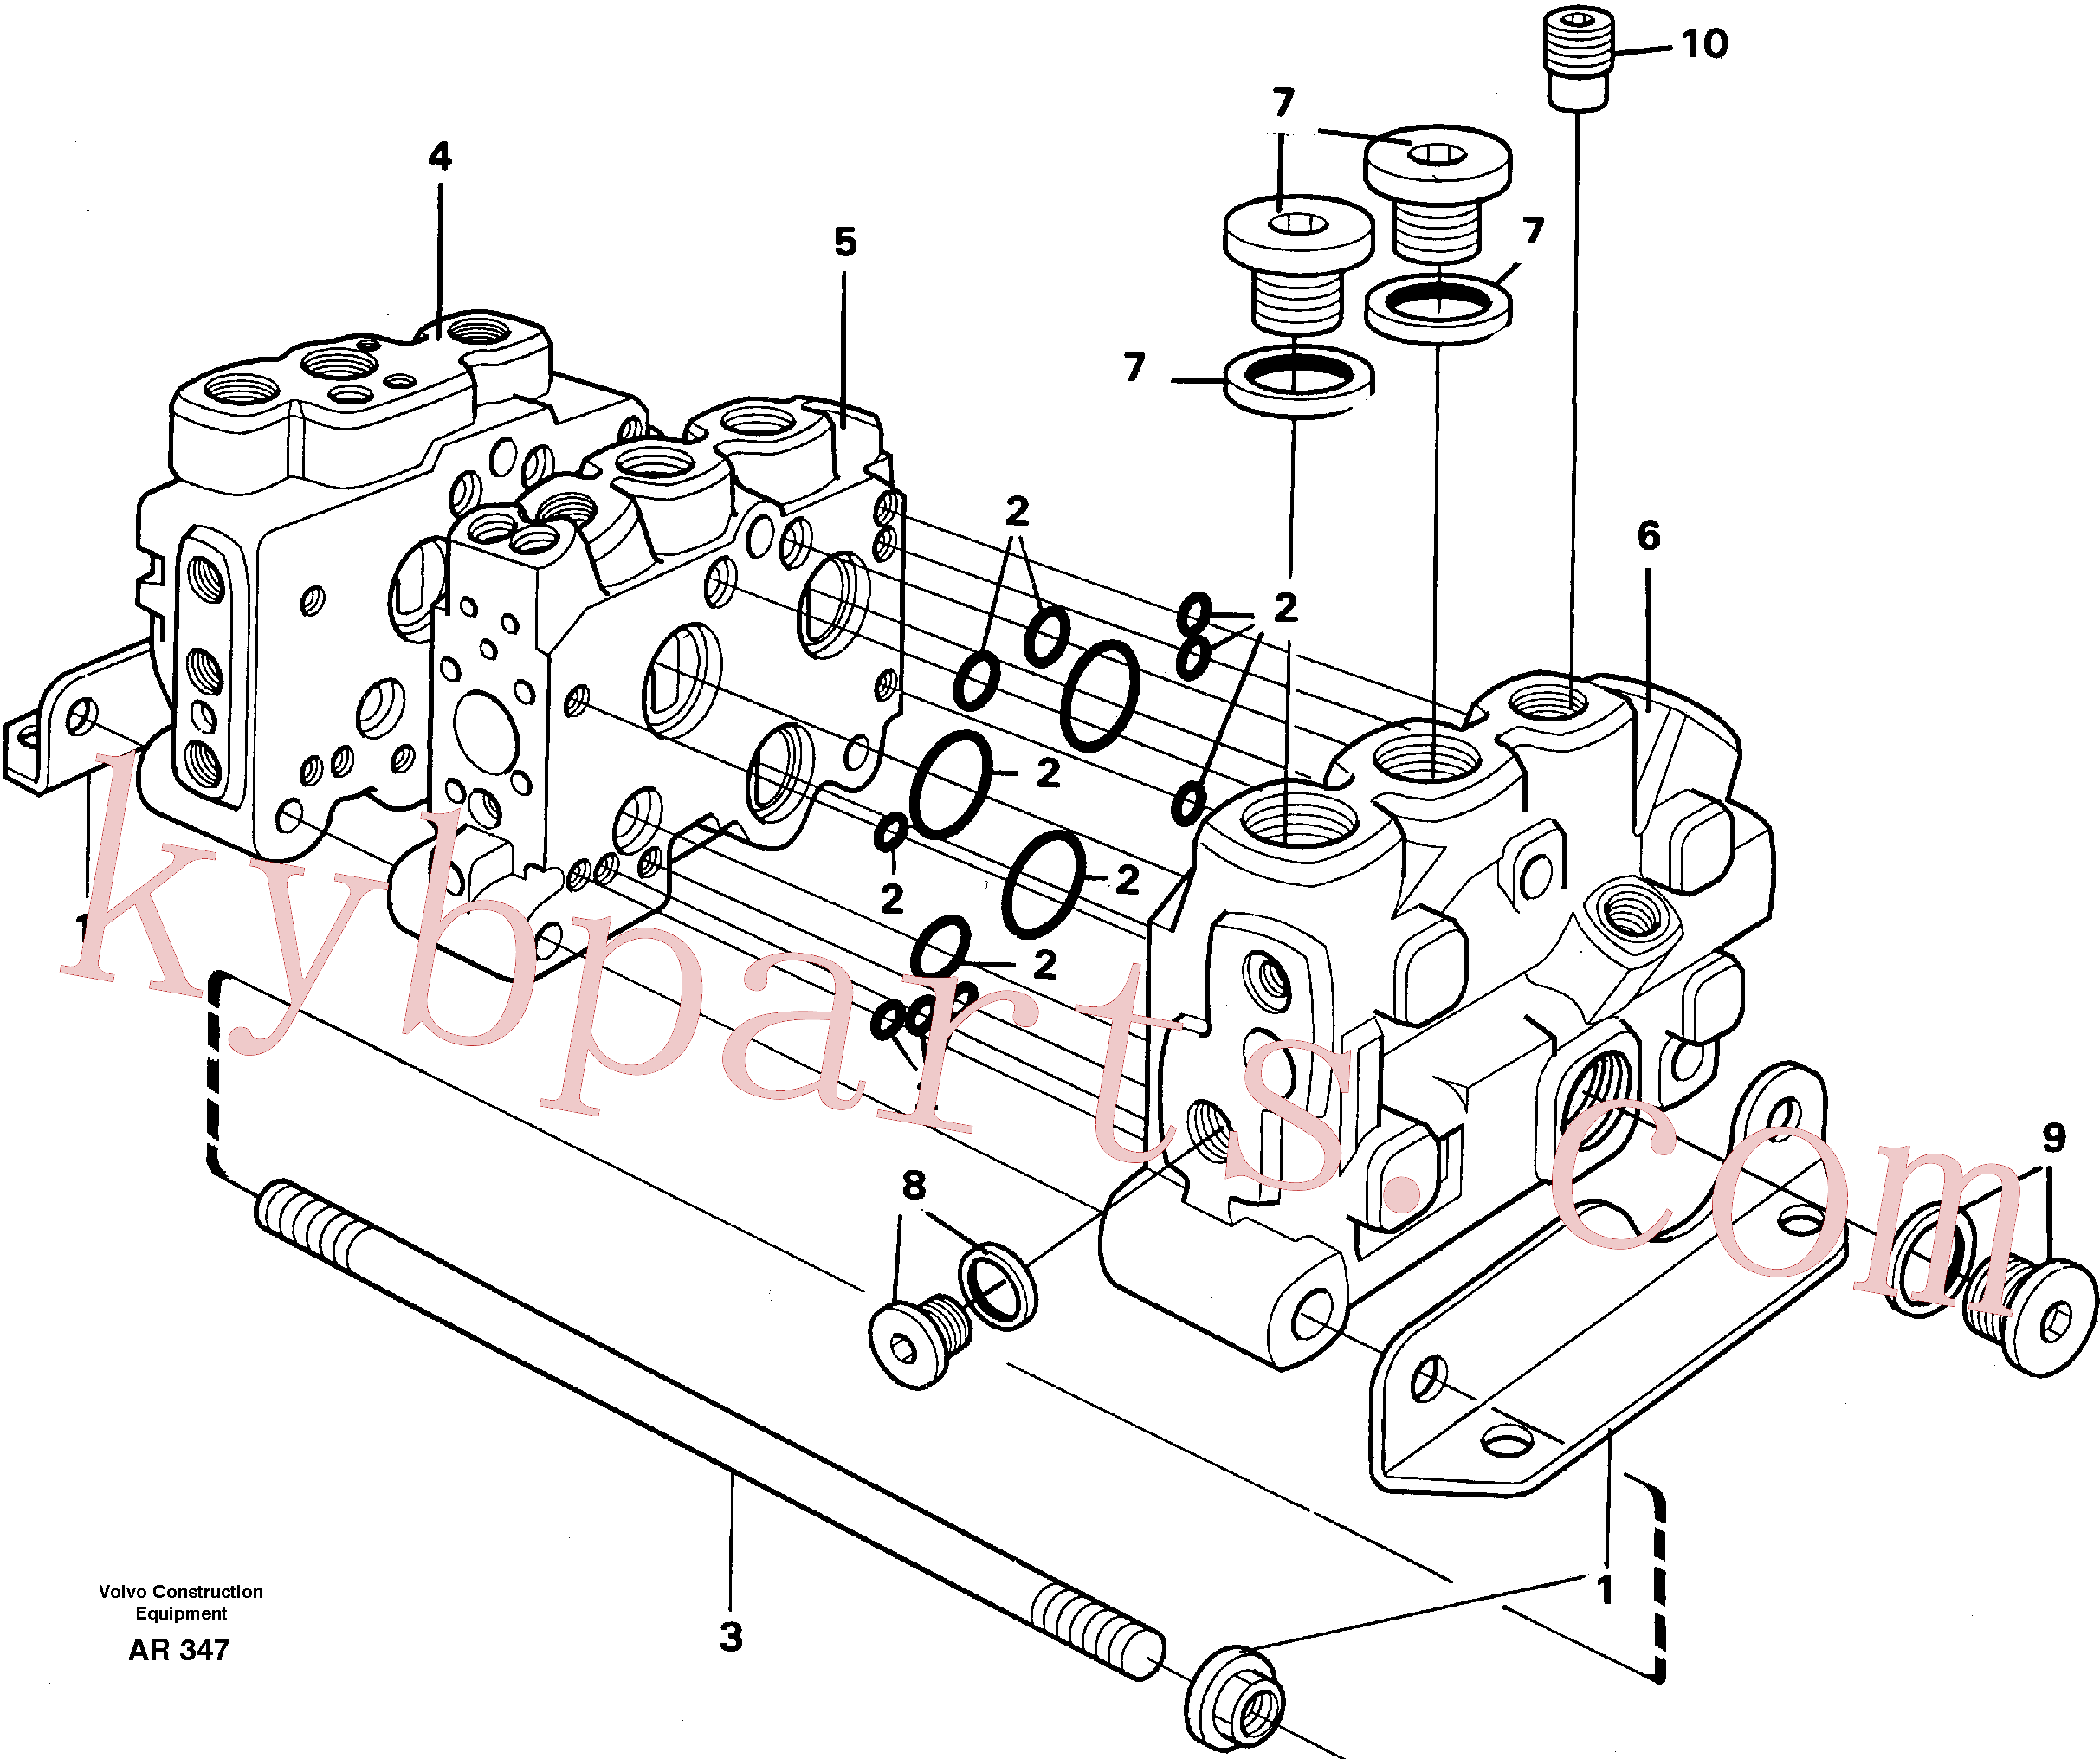 VOE11701439 for Volvo Valve section with assembly parts(AR347 assembly)